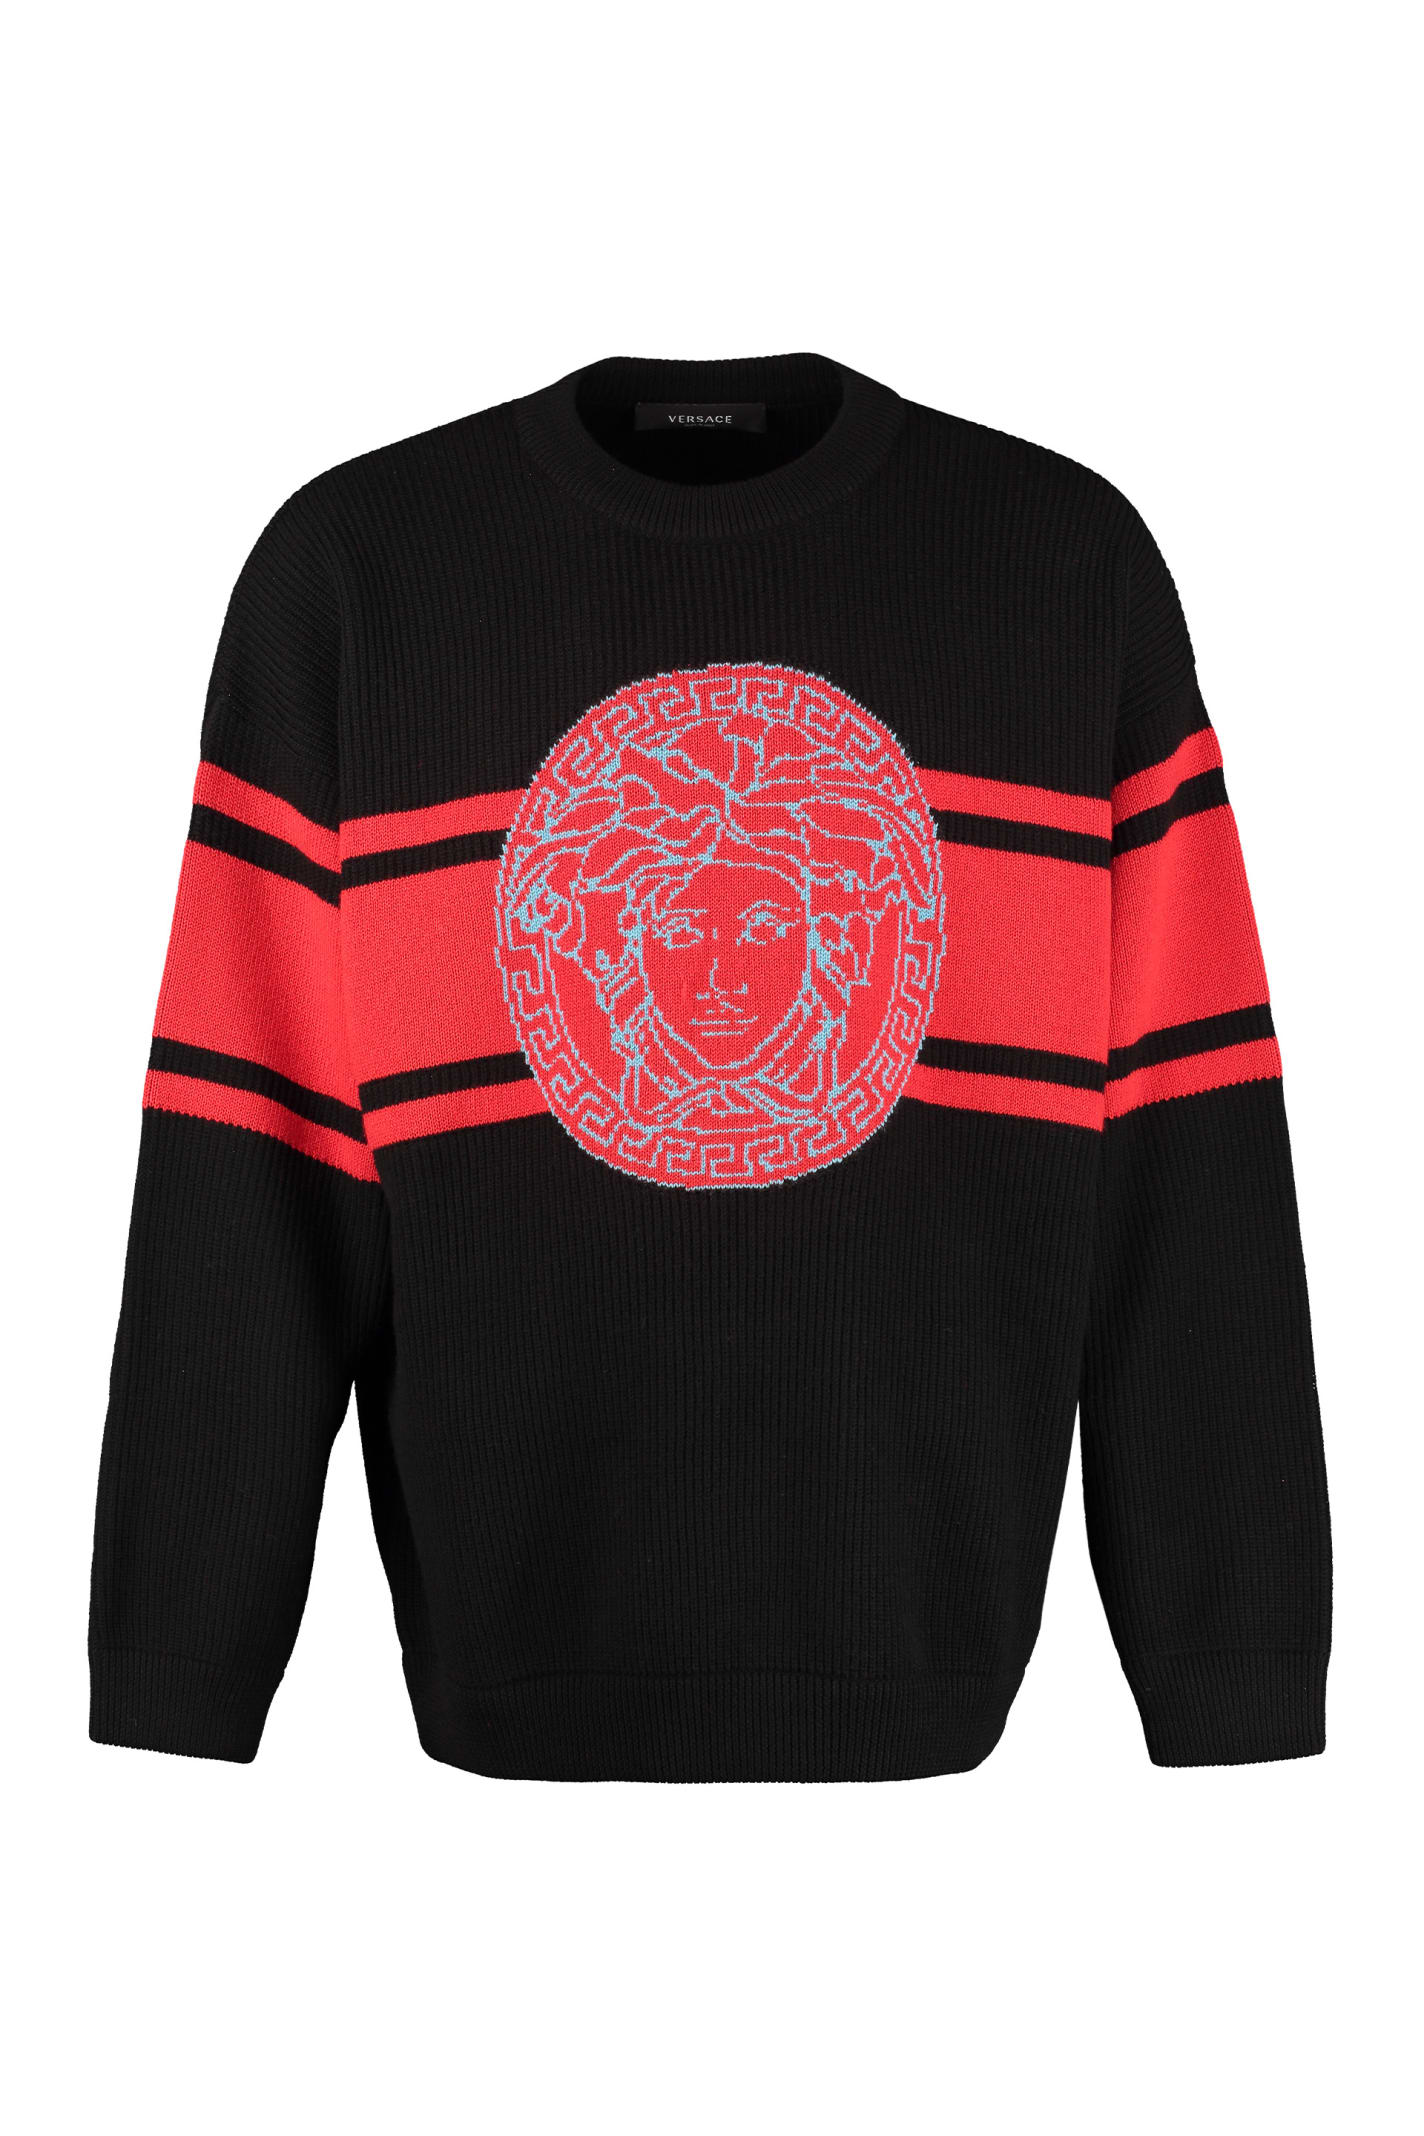 Versace Clothing RIBBED WOOL SWEATER